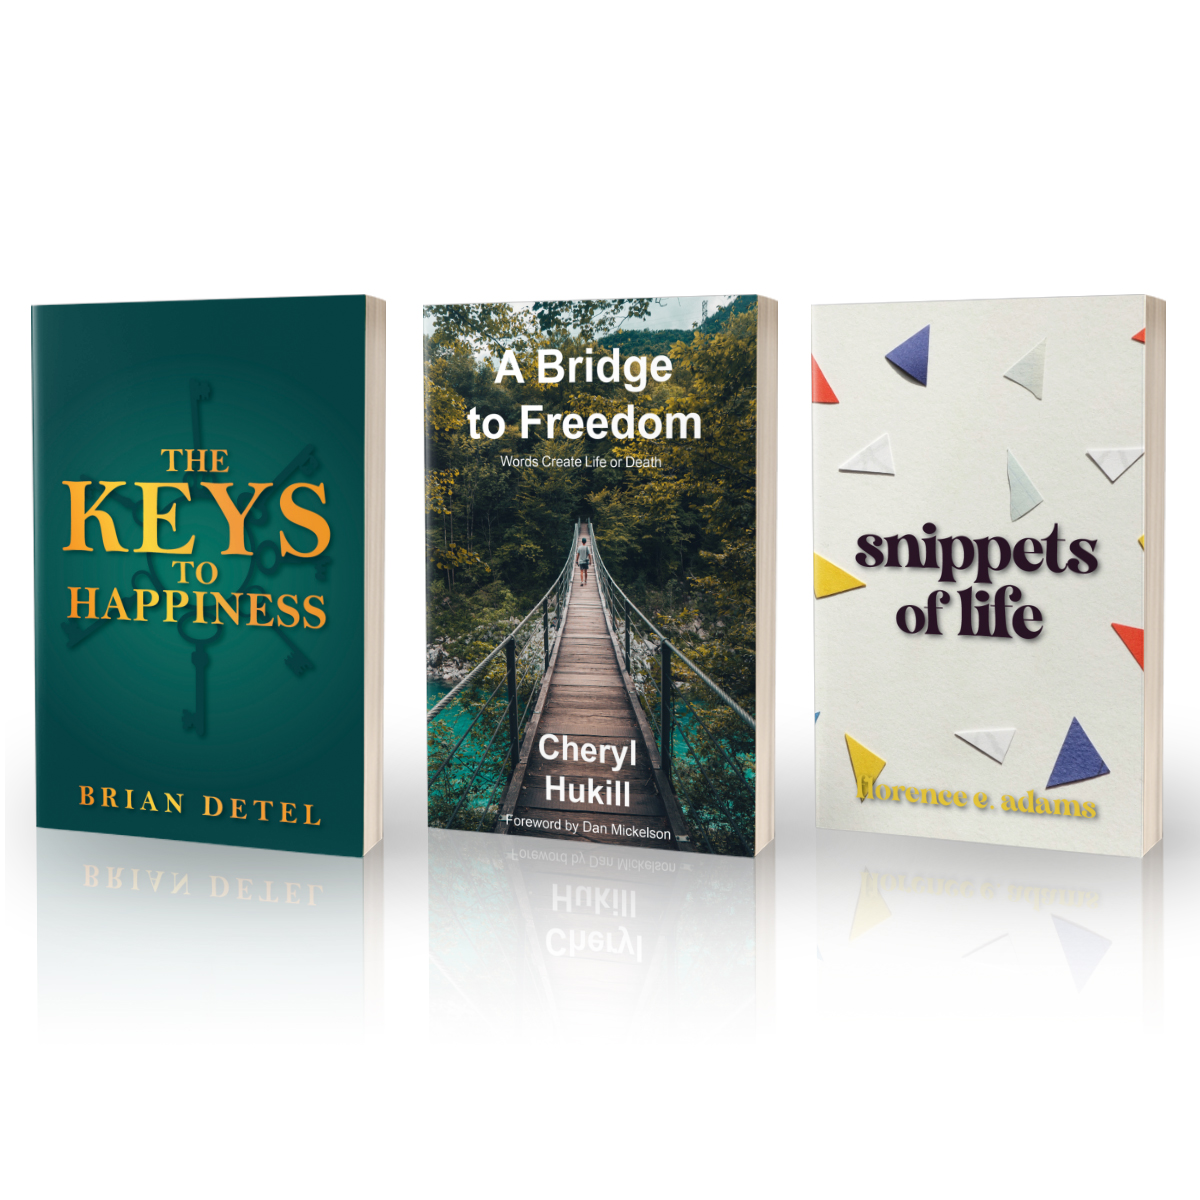 NEW BOOKS THIS WEEK!!  Florence E Adams: https://t.co/GmdnV4X2hu   Cheryl L Hukill: https://t.co/IvjCkvexPZ    Brian Detel: https://t.co/HNfuqECIrU  ---Have you ever dreamed of being an author? @TBN & @trilogybooks want to help!  go to https://t.co/MFGdA3Lkdn to find out how! https://t.co/8jg1PCHL5P